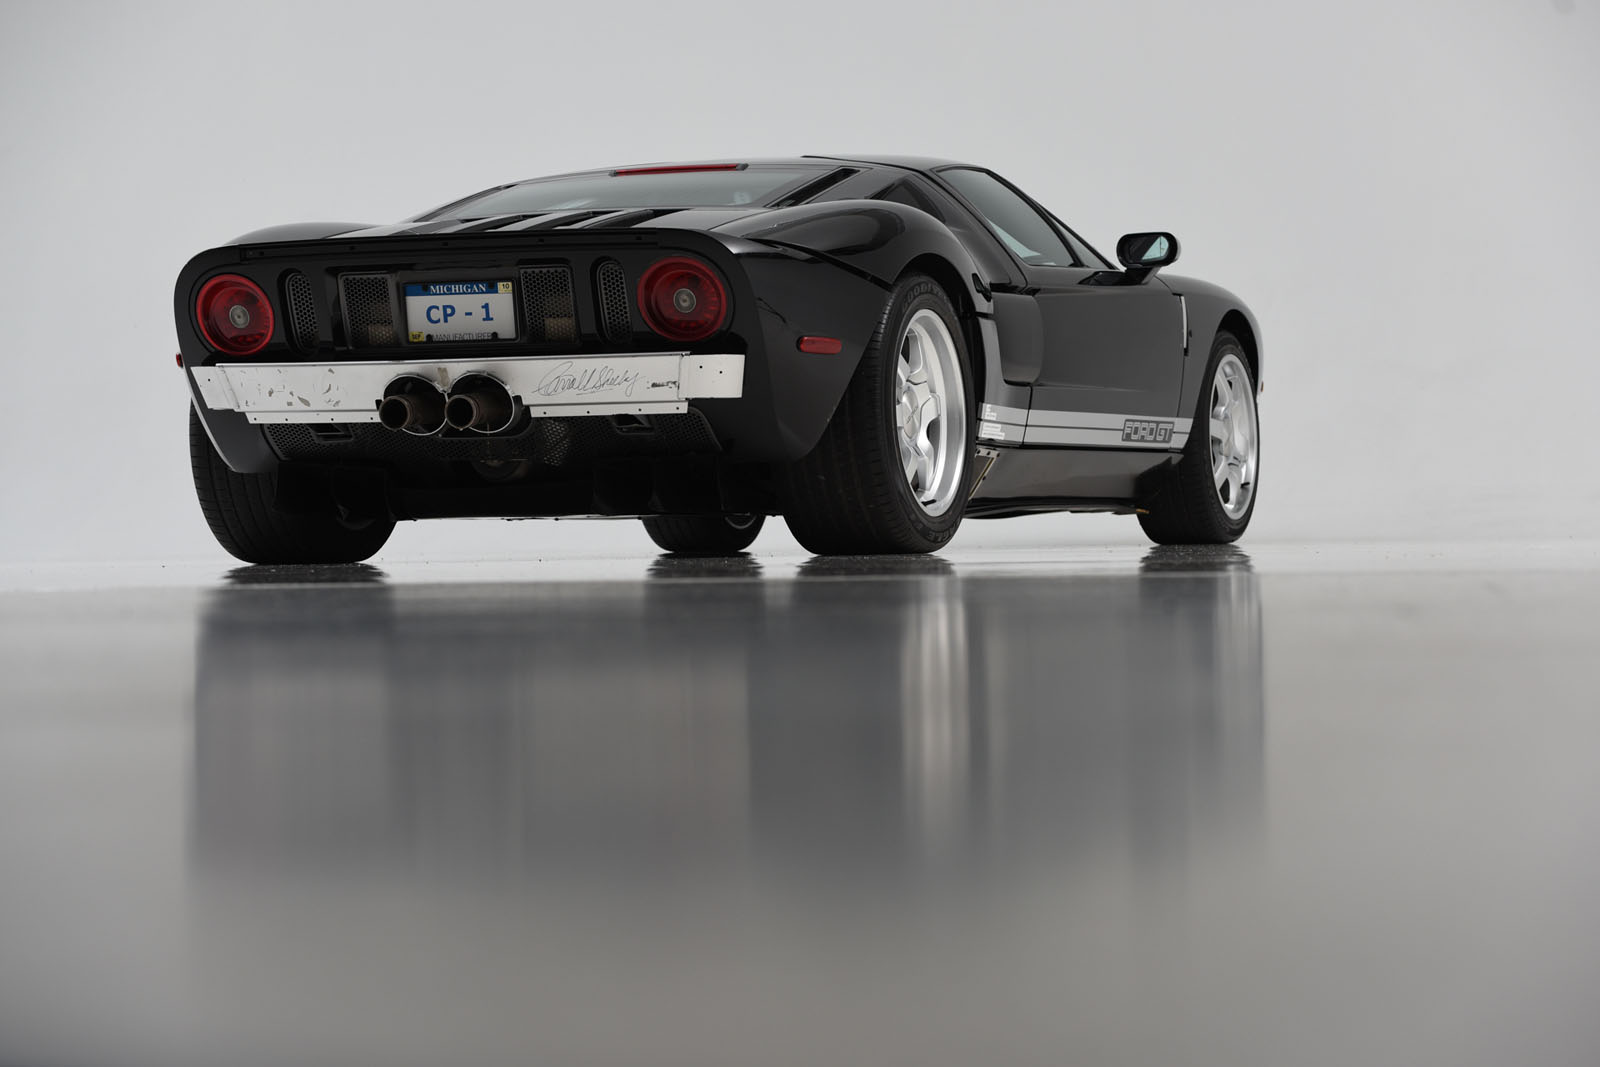 Ford GT Prototype CP-1 auction (19)